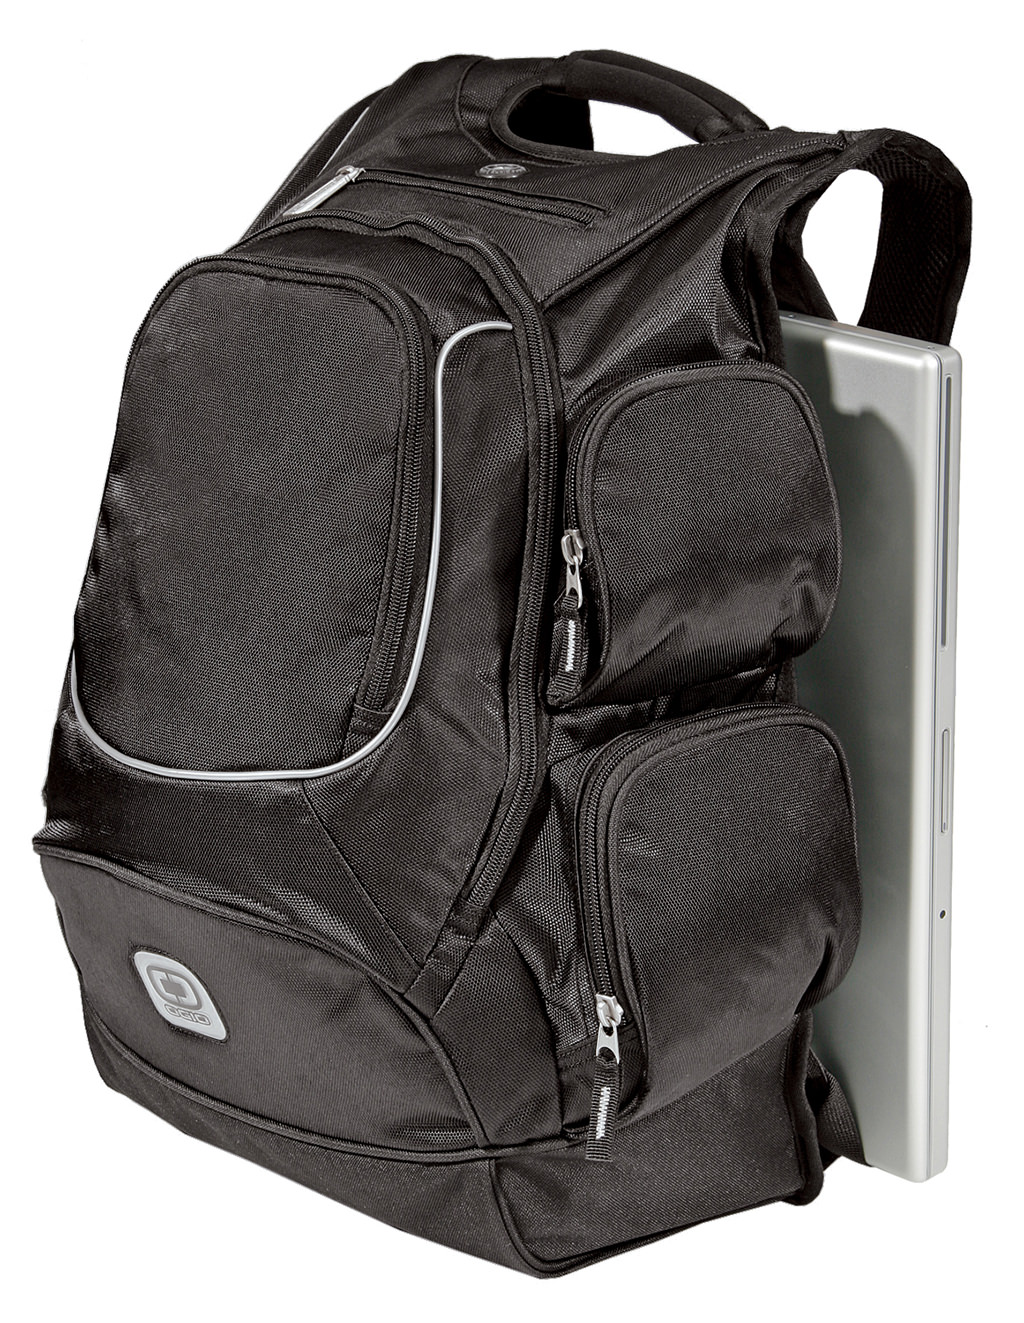 Ogio Backpack Warranty Dgl31CS3